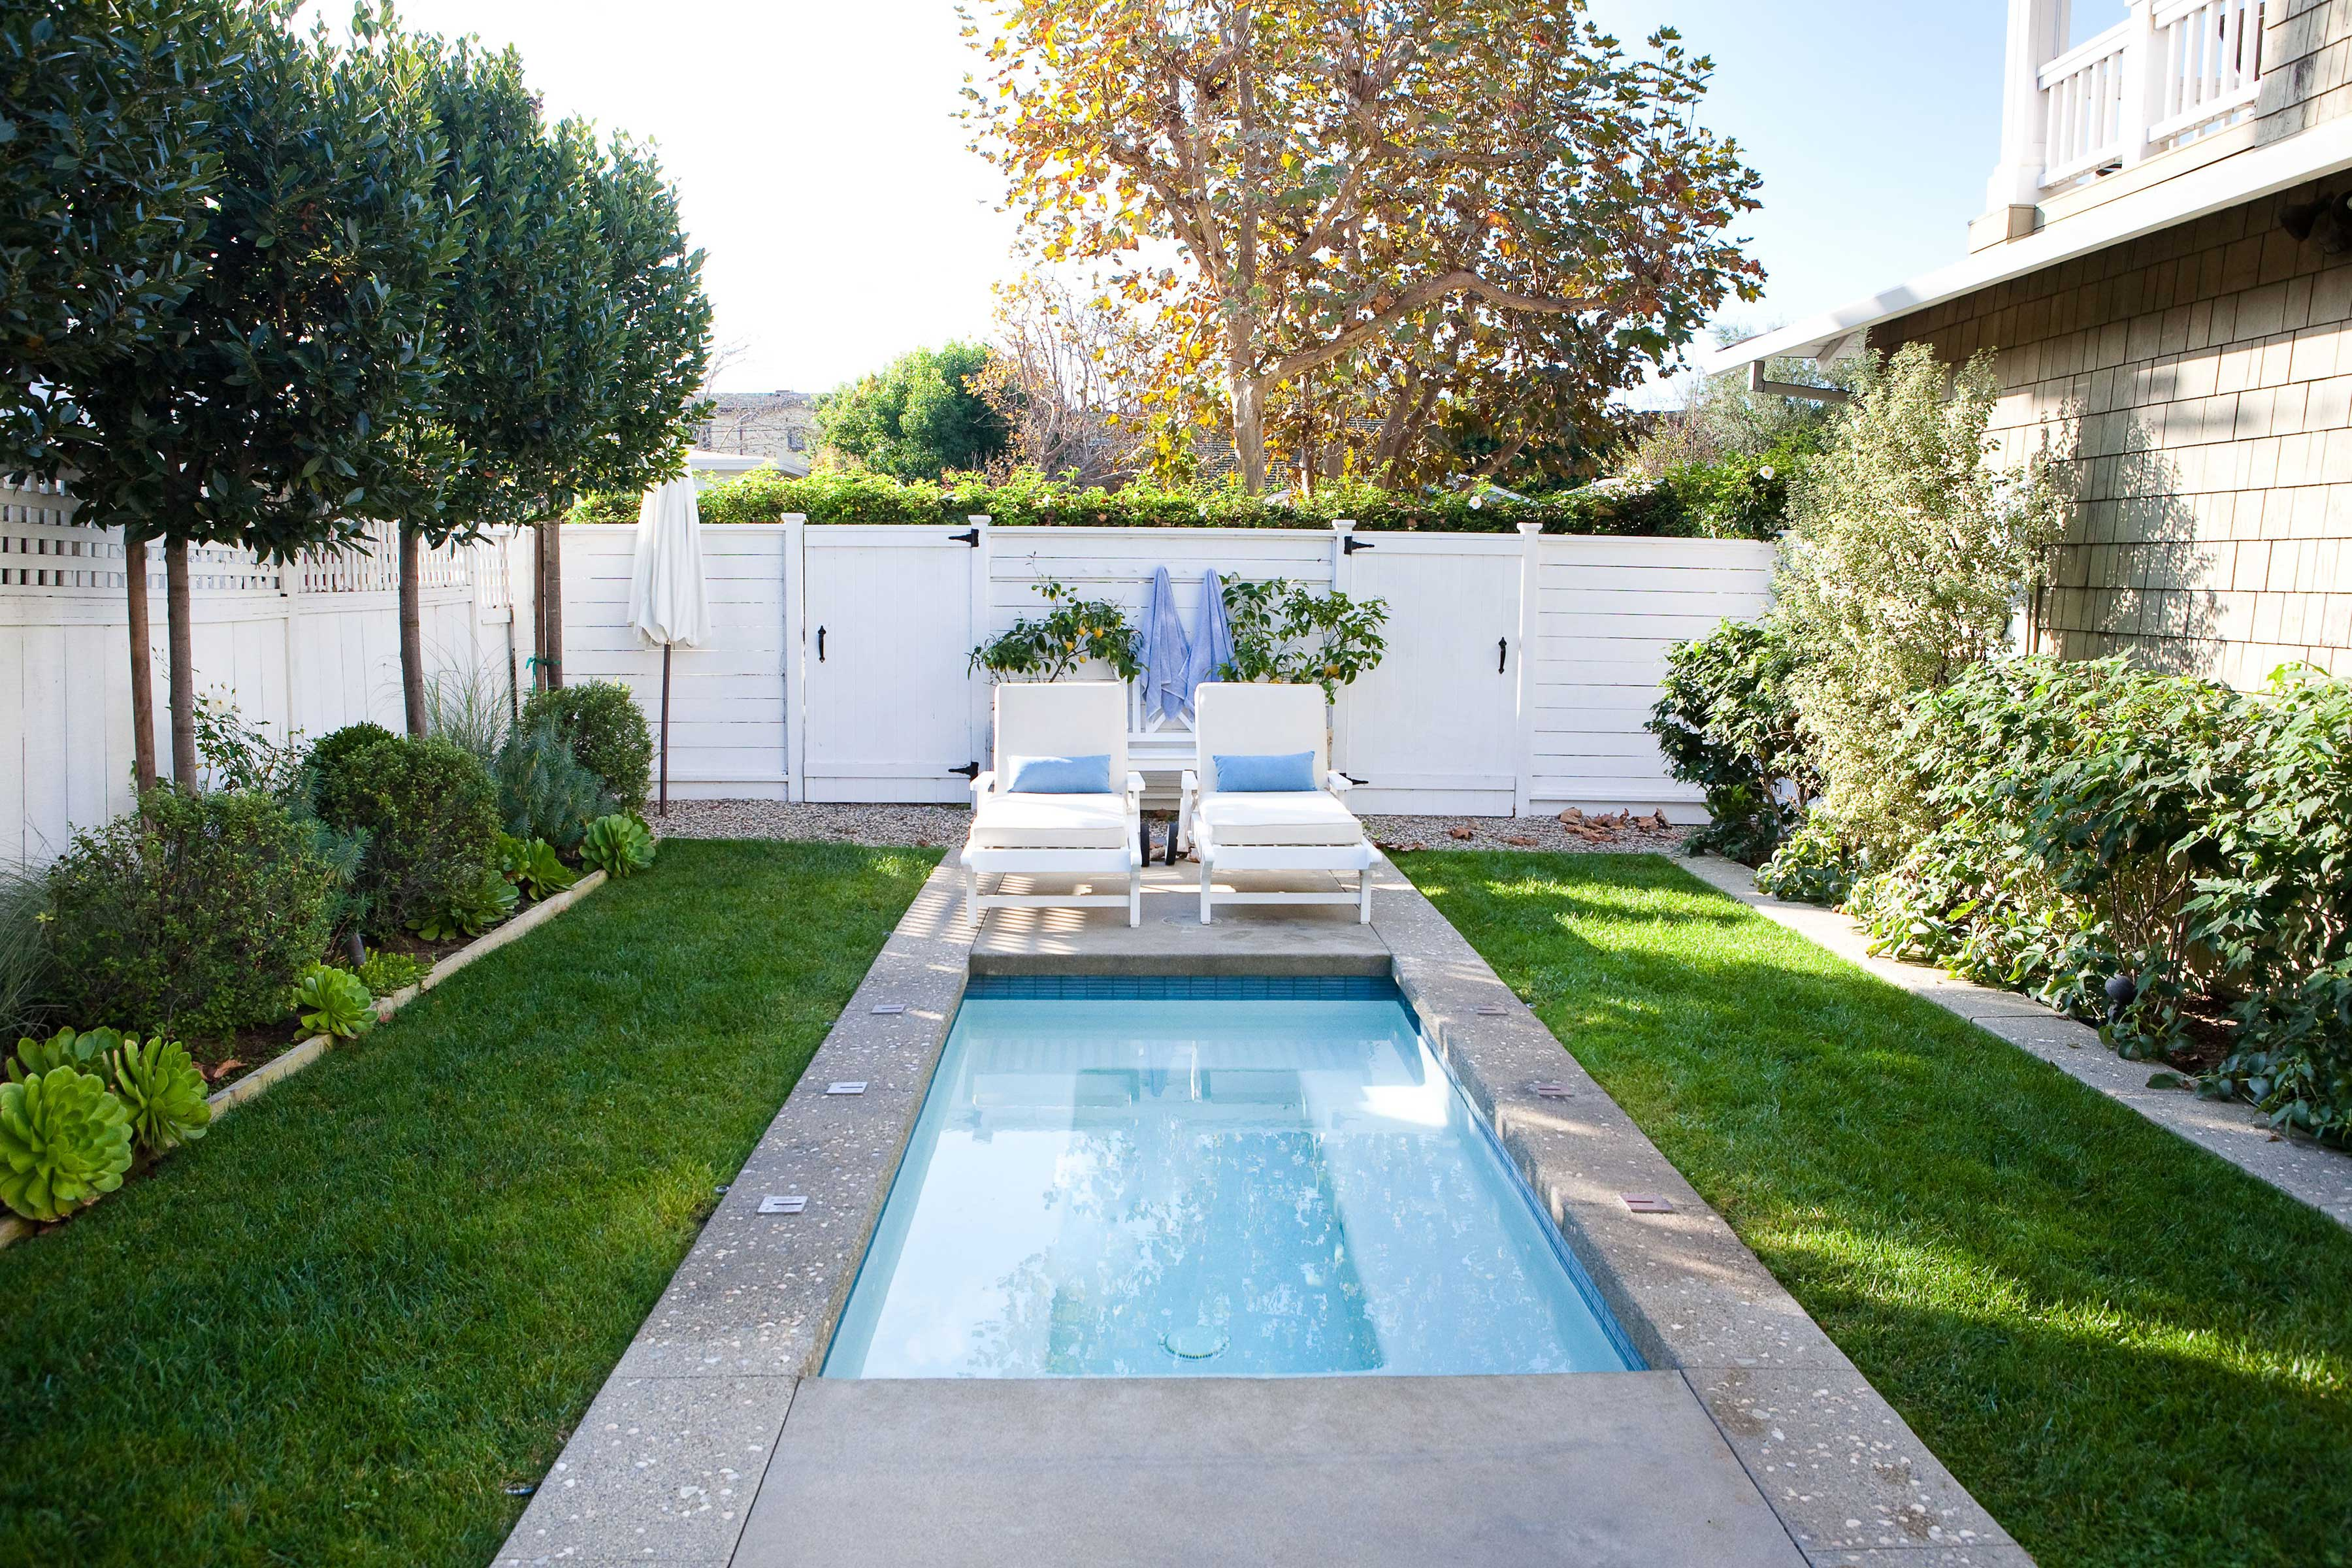 Backyard plunge pool surrounded by green landscaping and two lounge chairs.